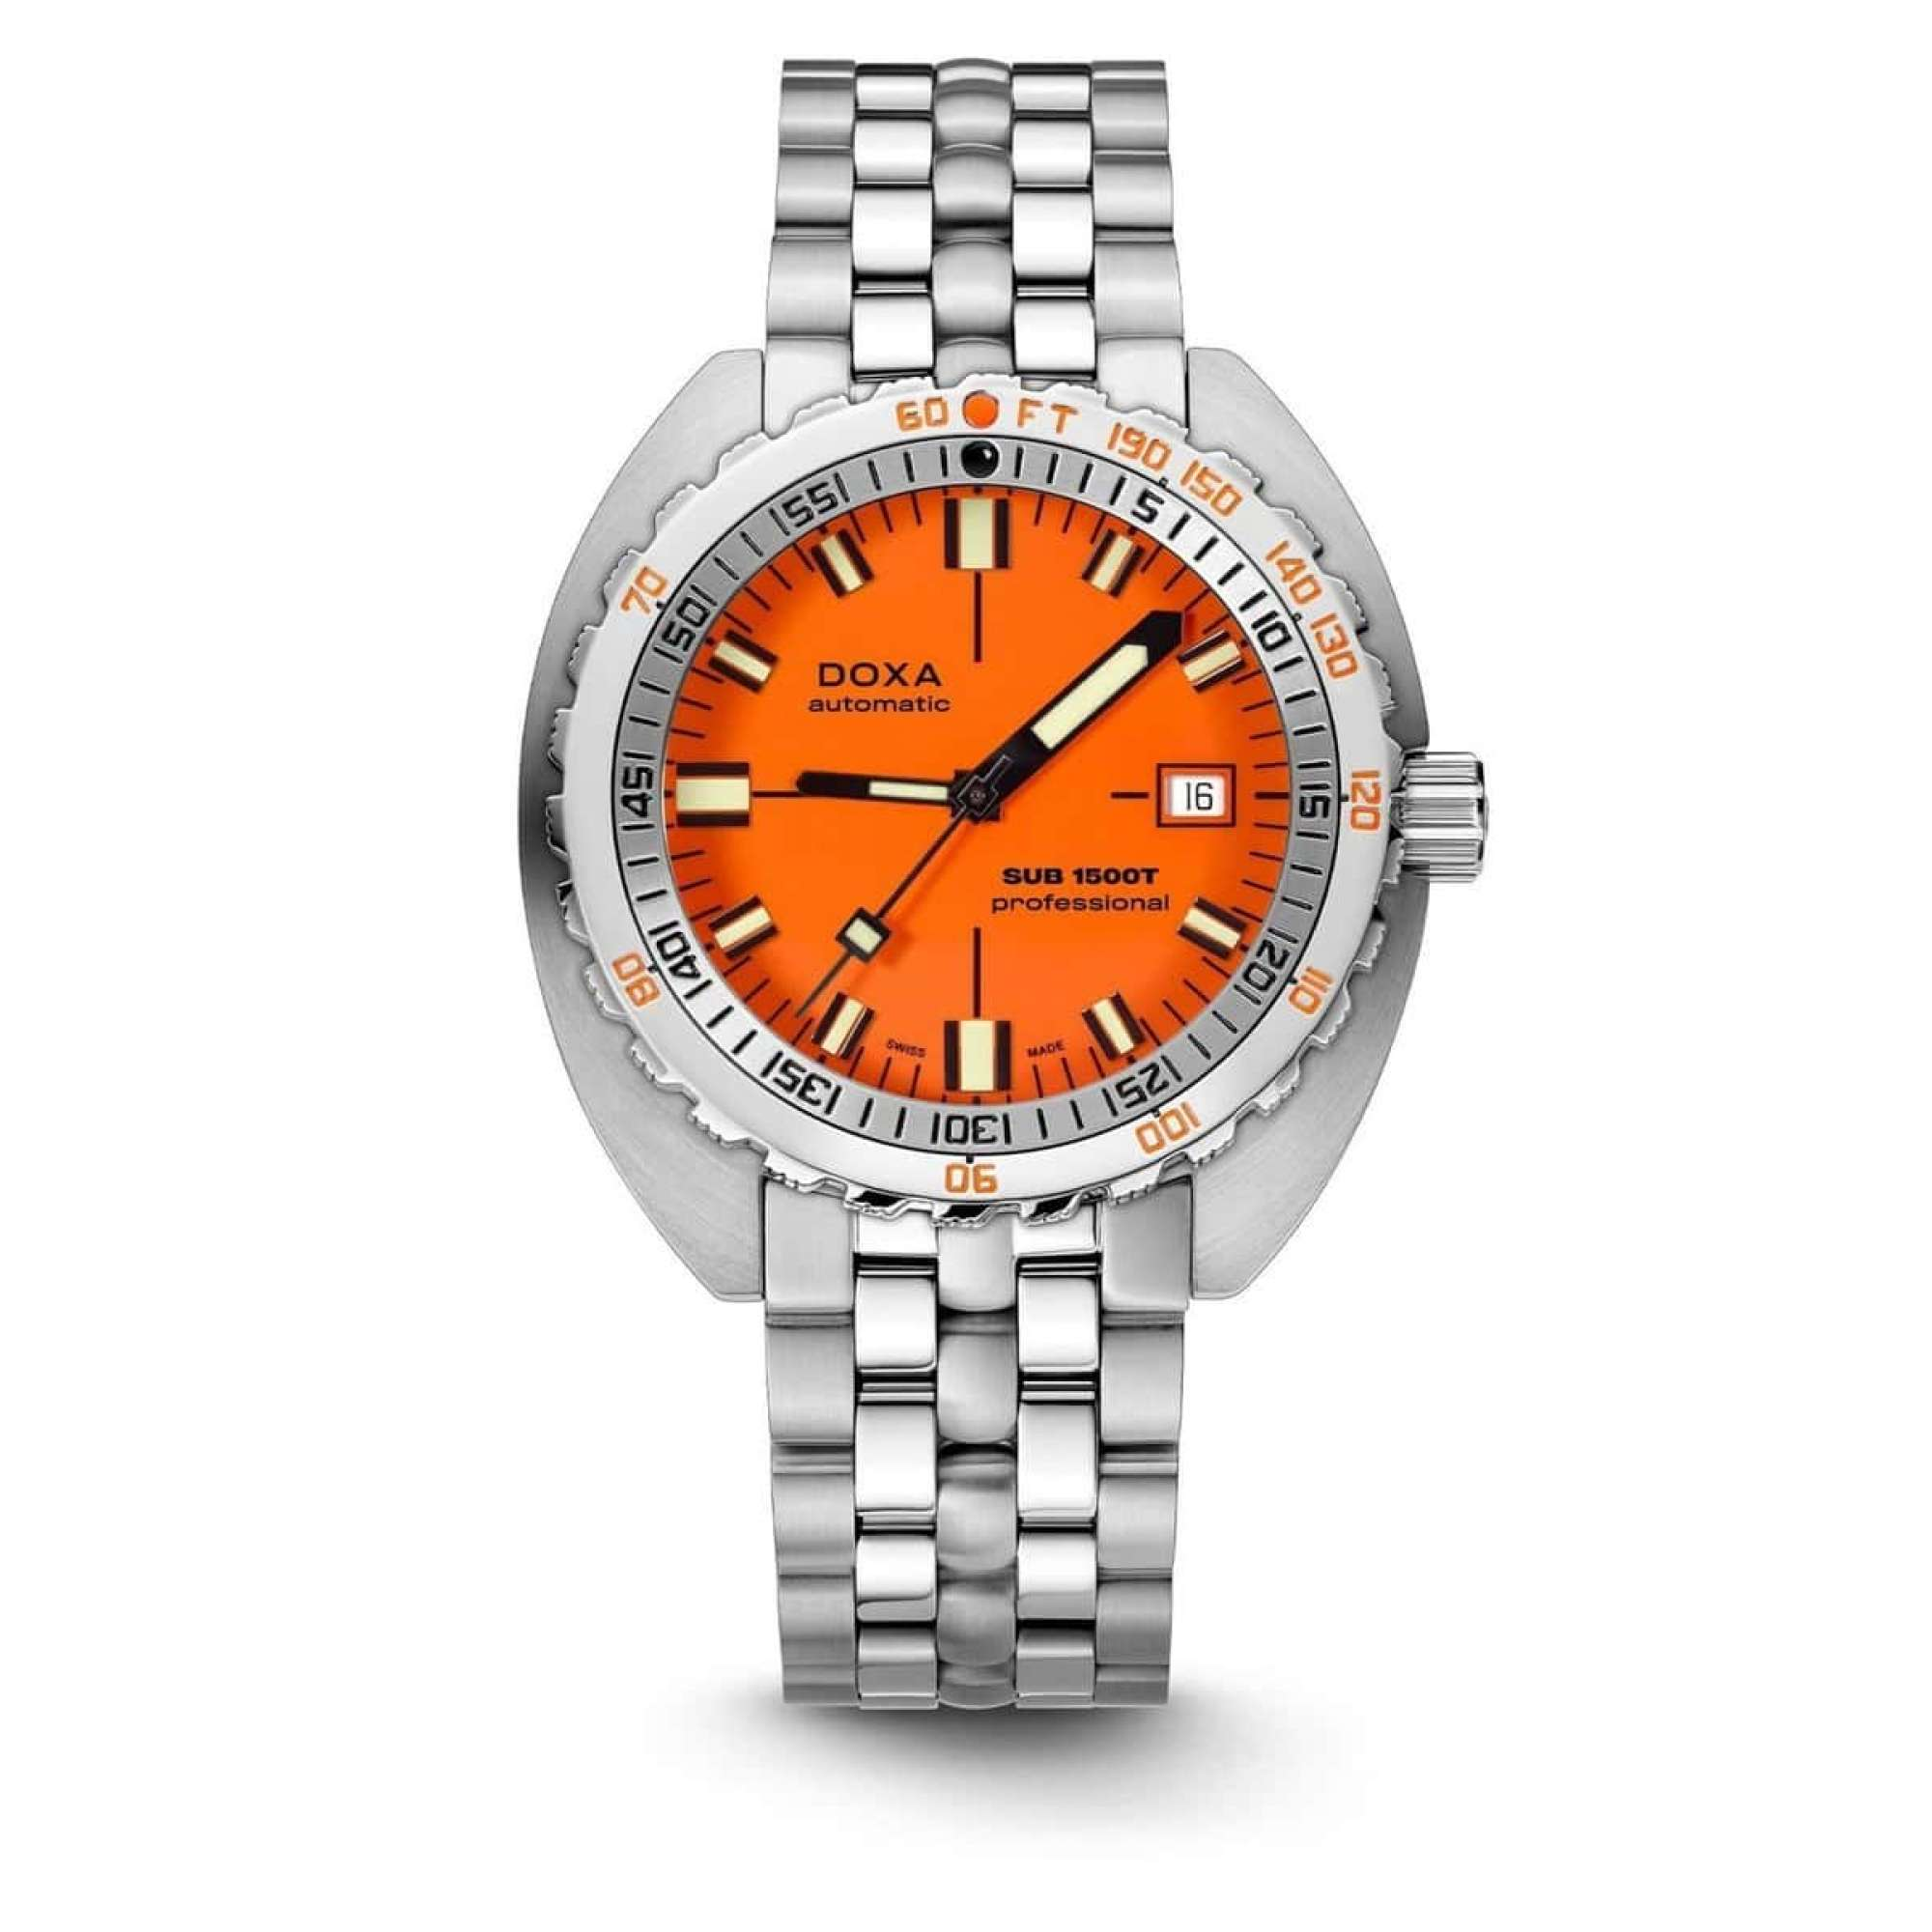 Doxa SUB 1500T Professional 881.10.351.10 – Swiss Time